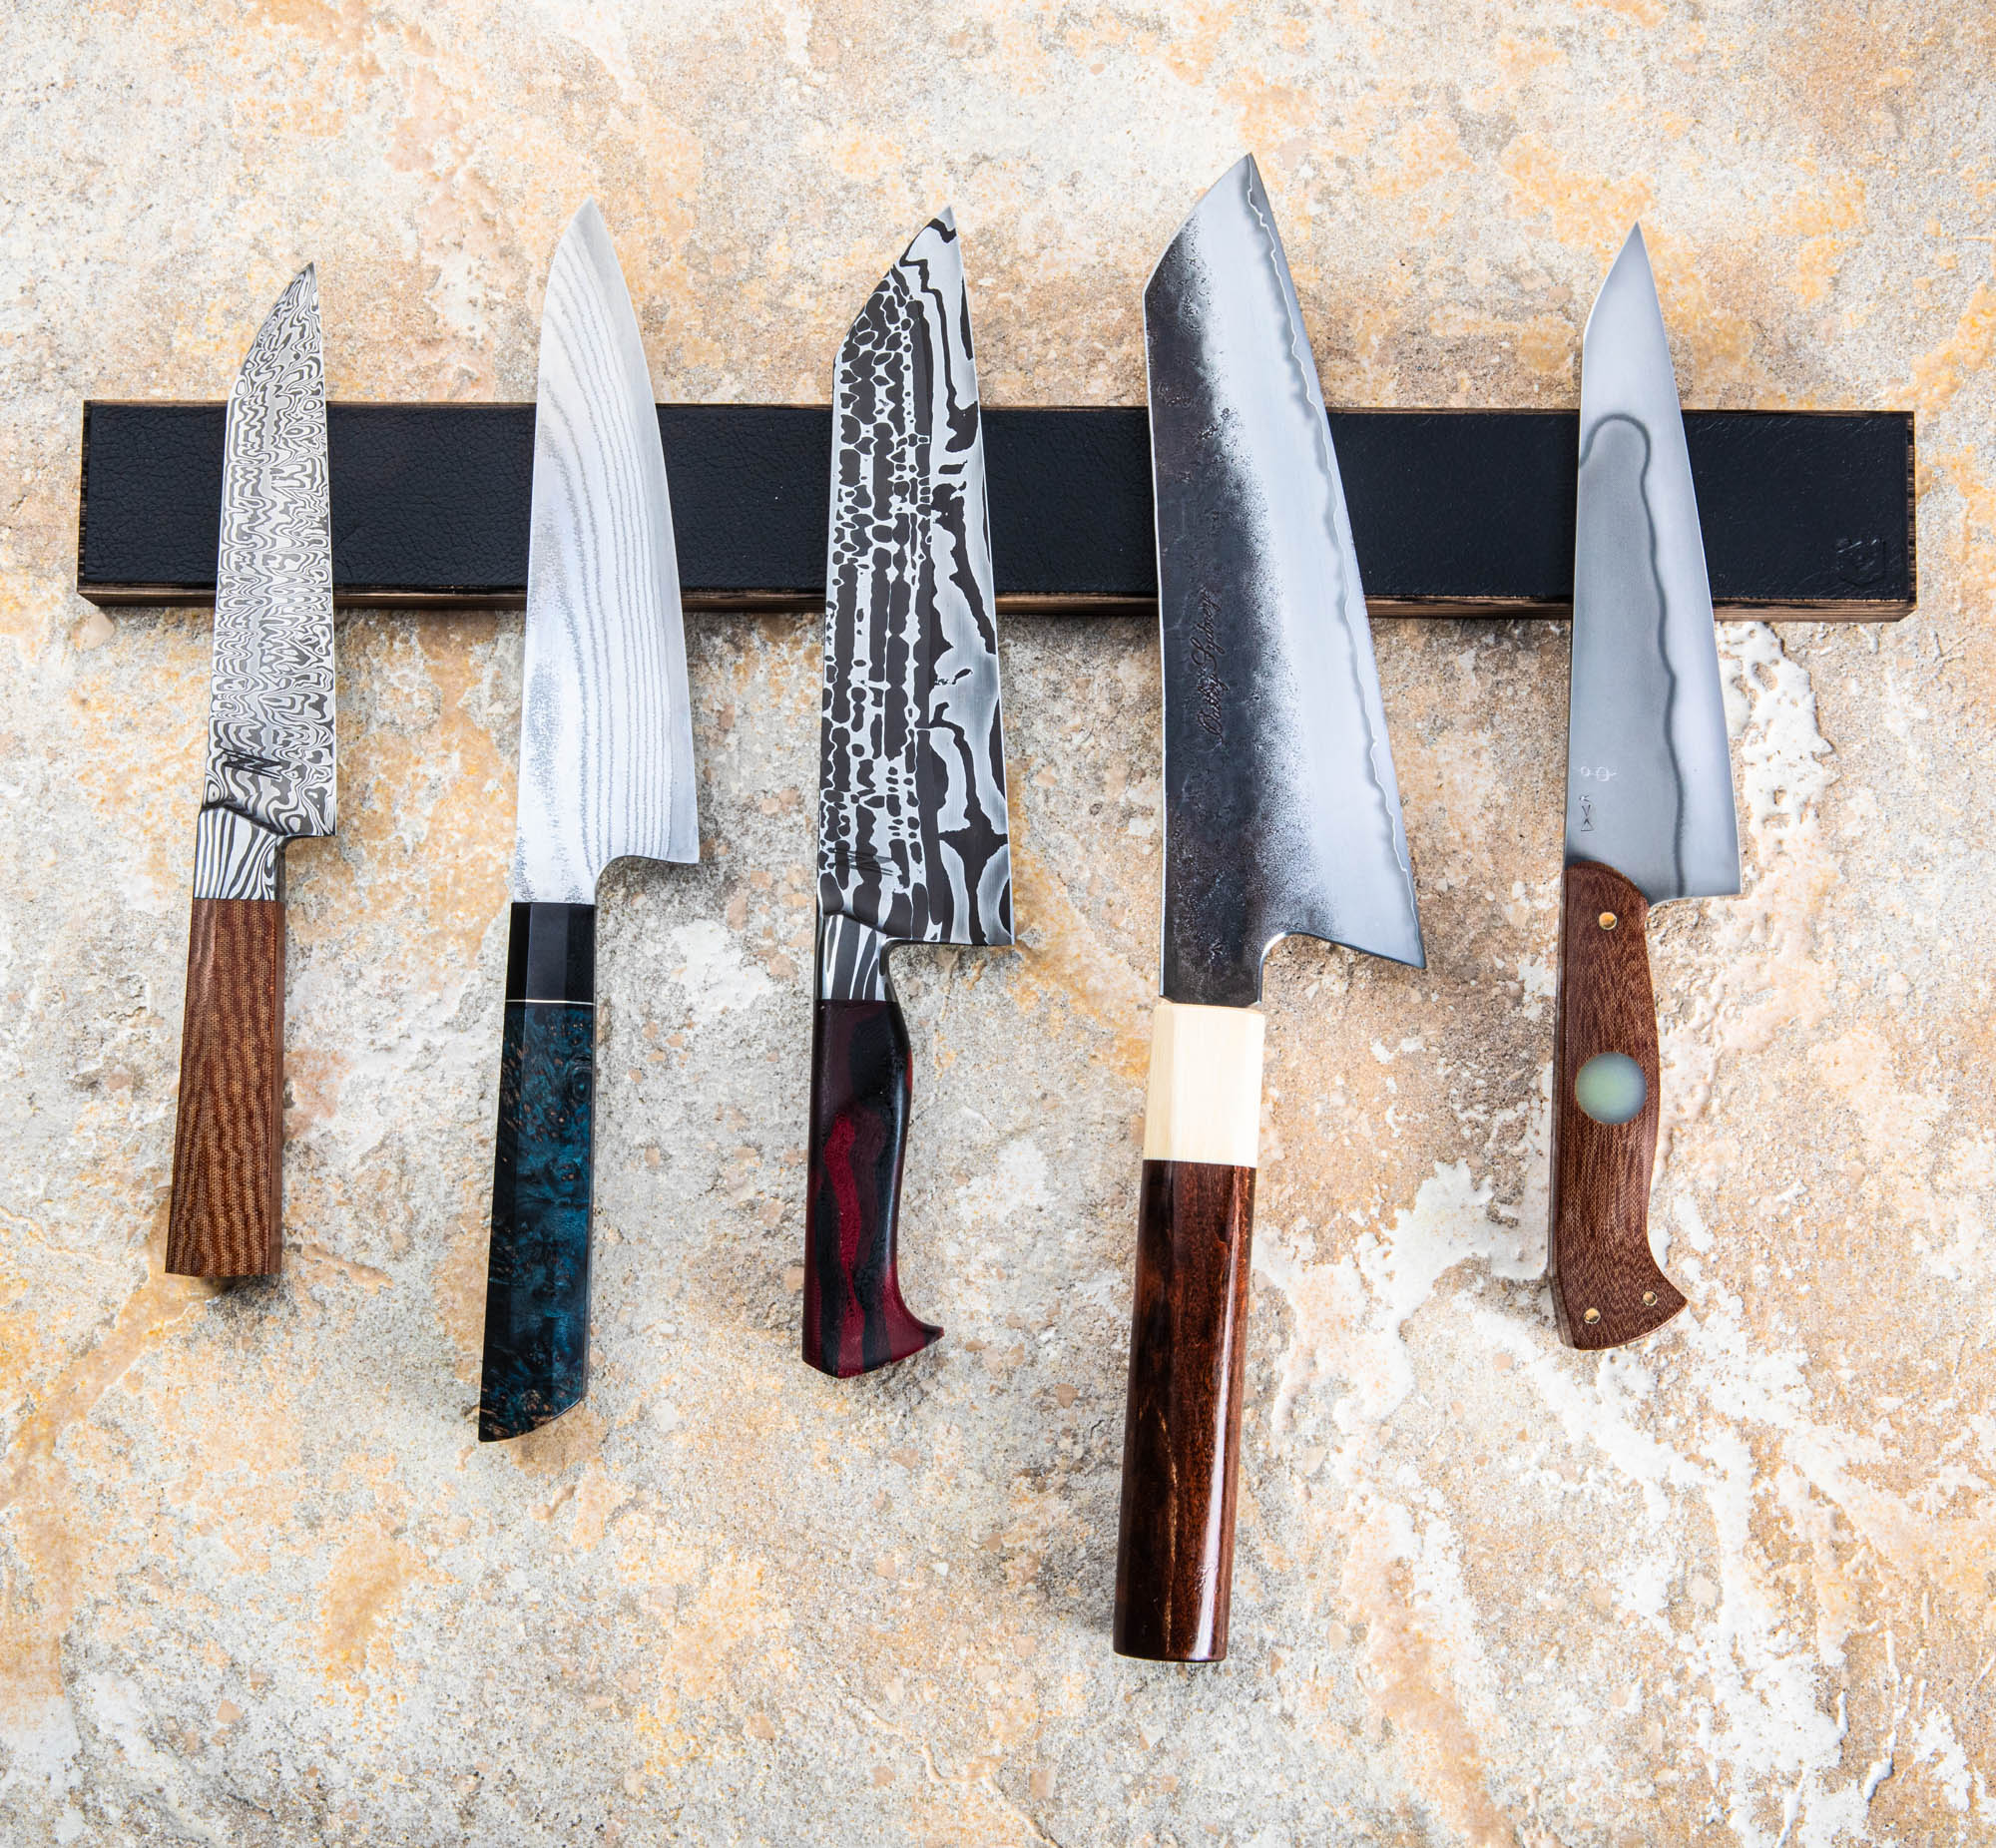 Subscriber-only Offer: Enjoy $150 any chef knife in this category on our wesbite with code CHEF2020.